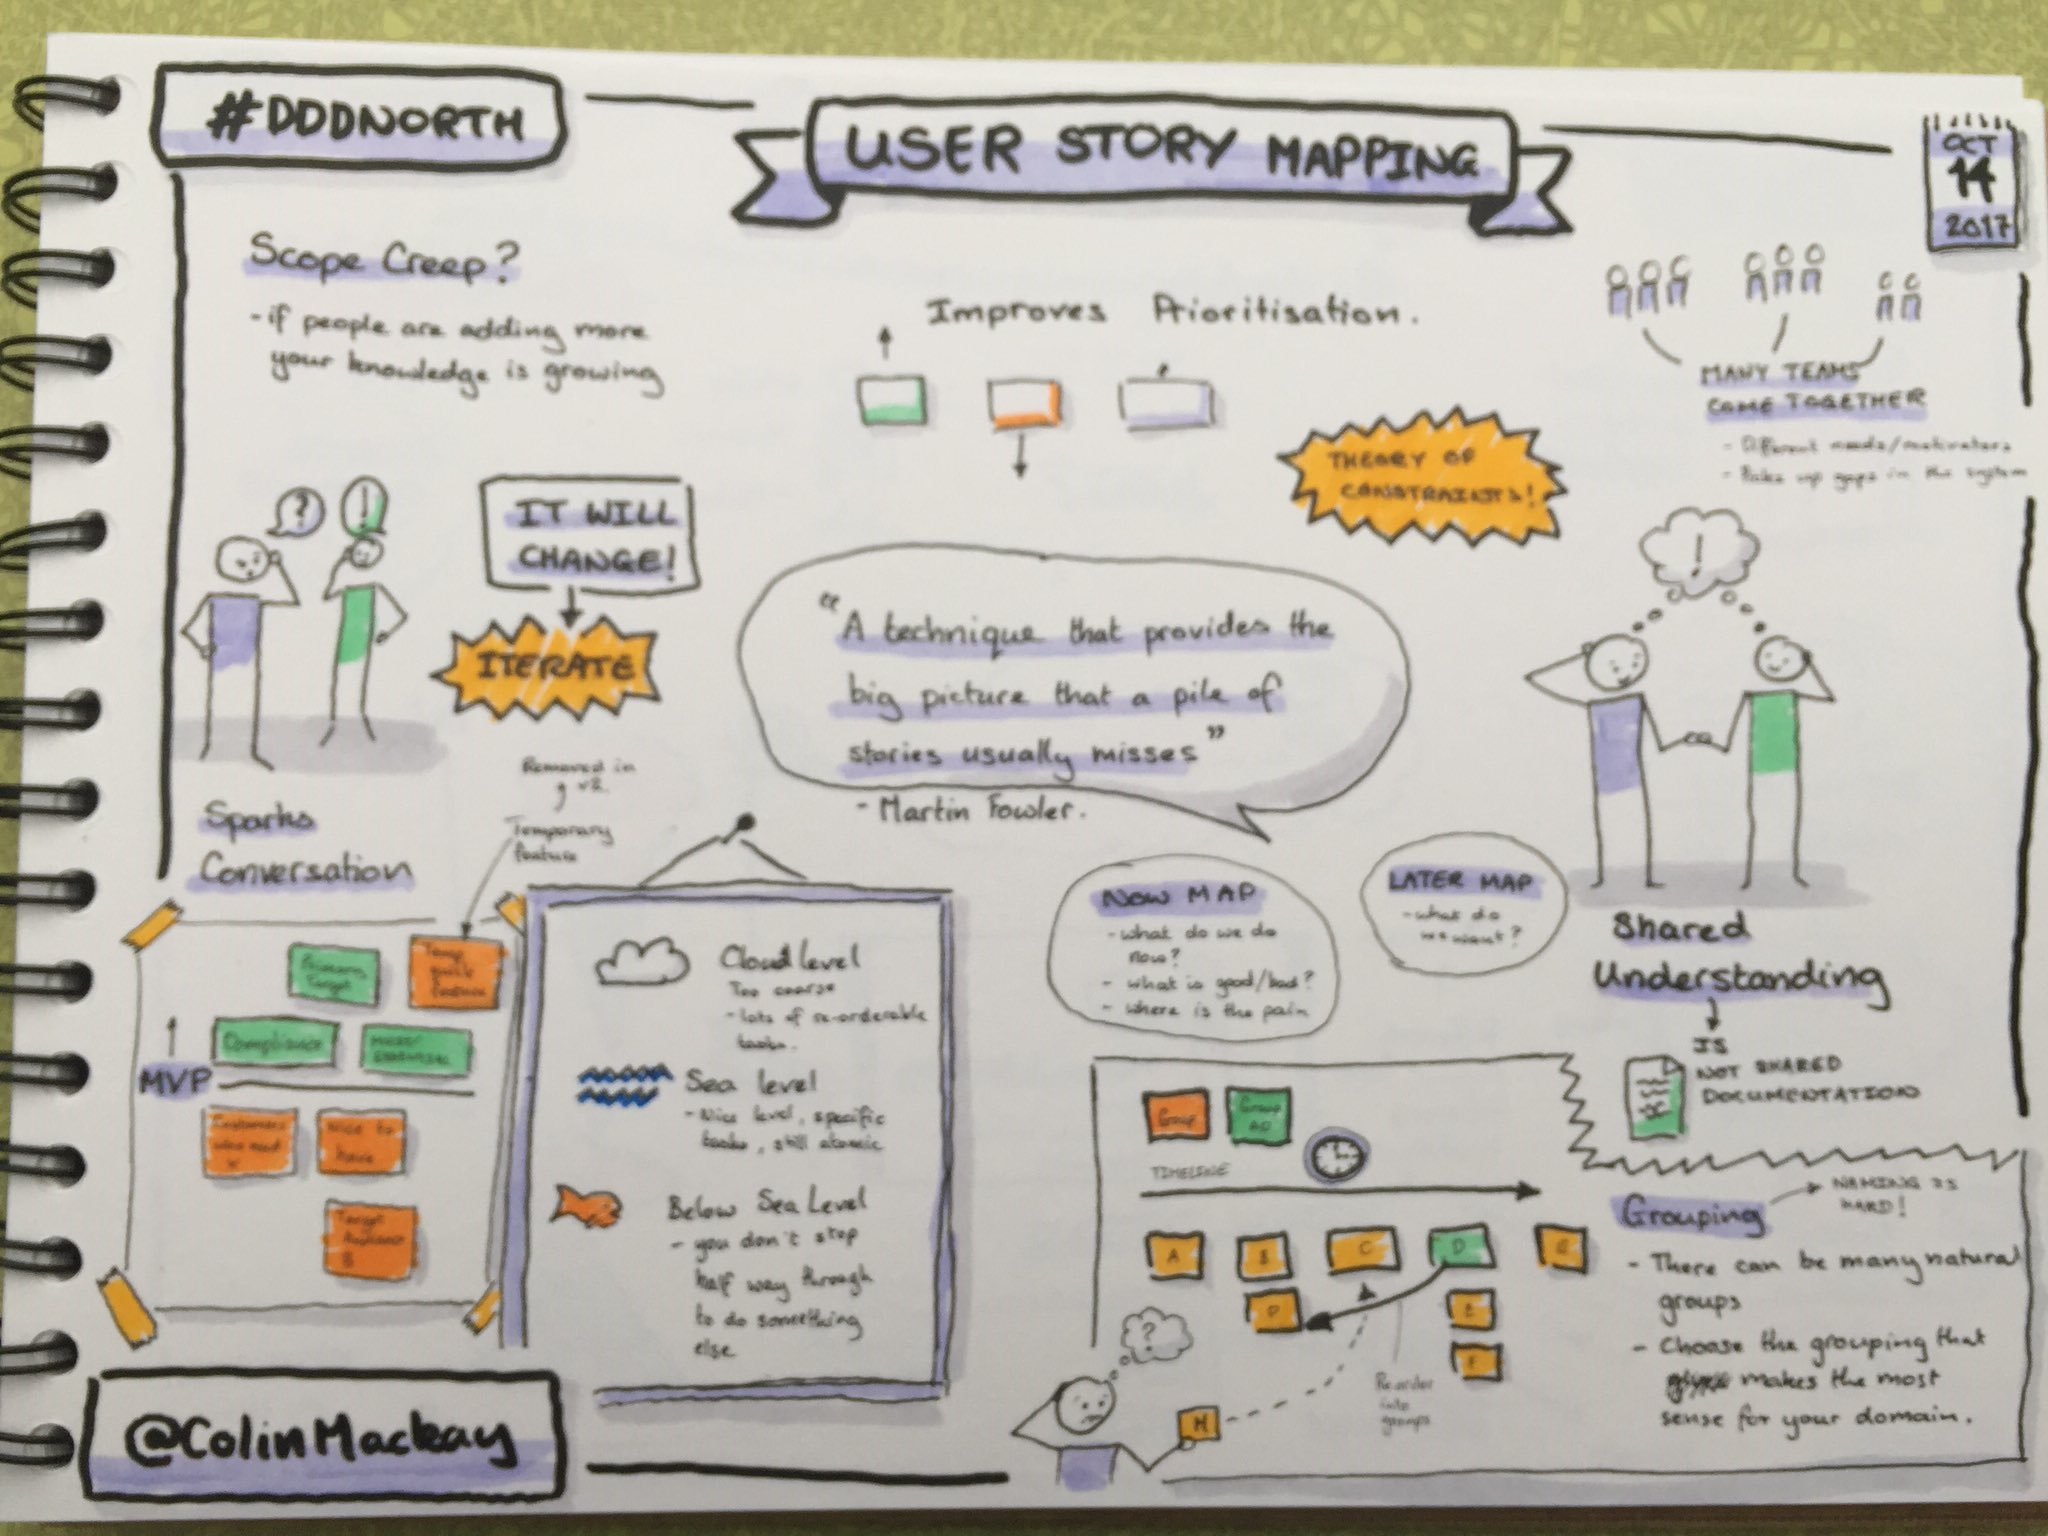 Ian Johnson's Sketchnote